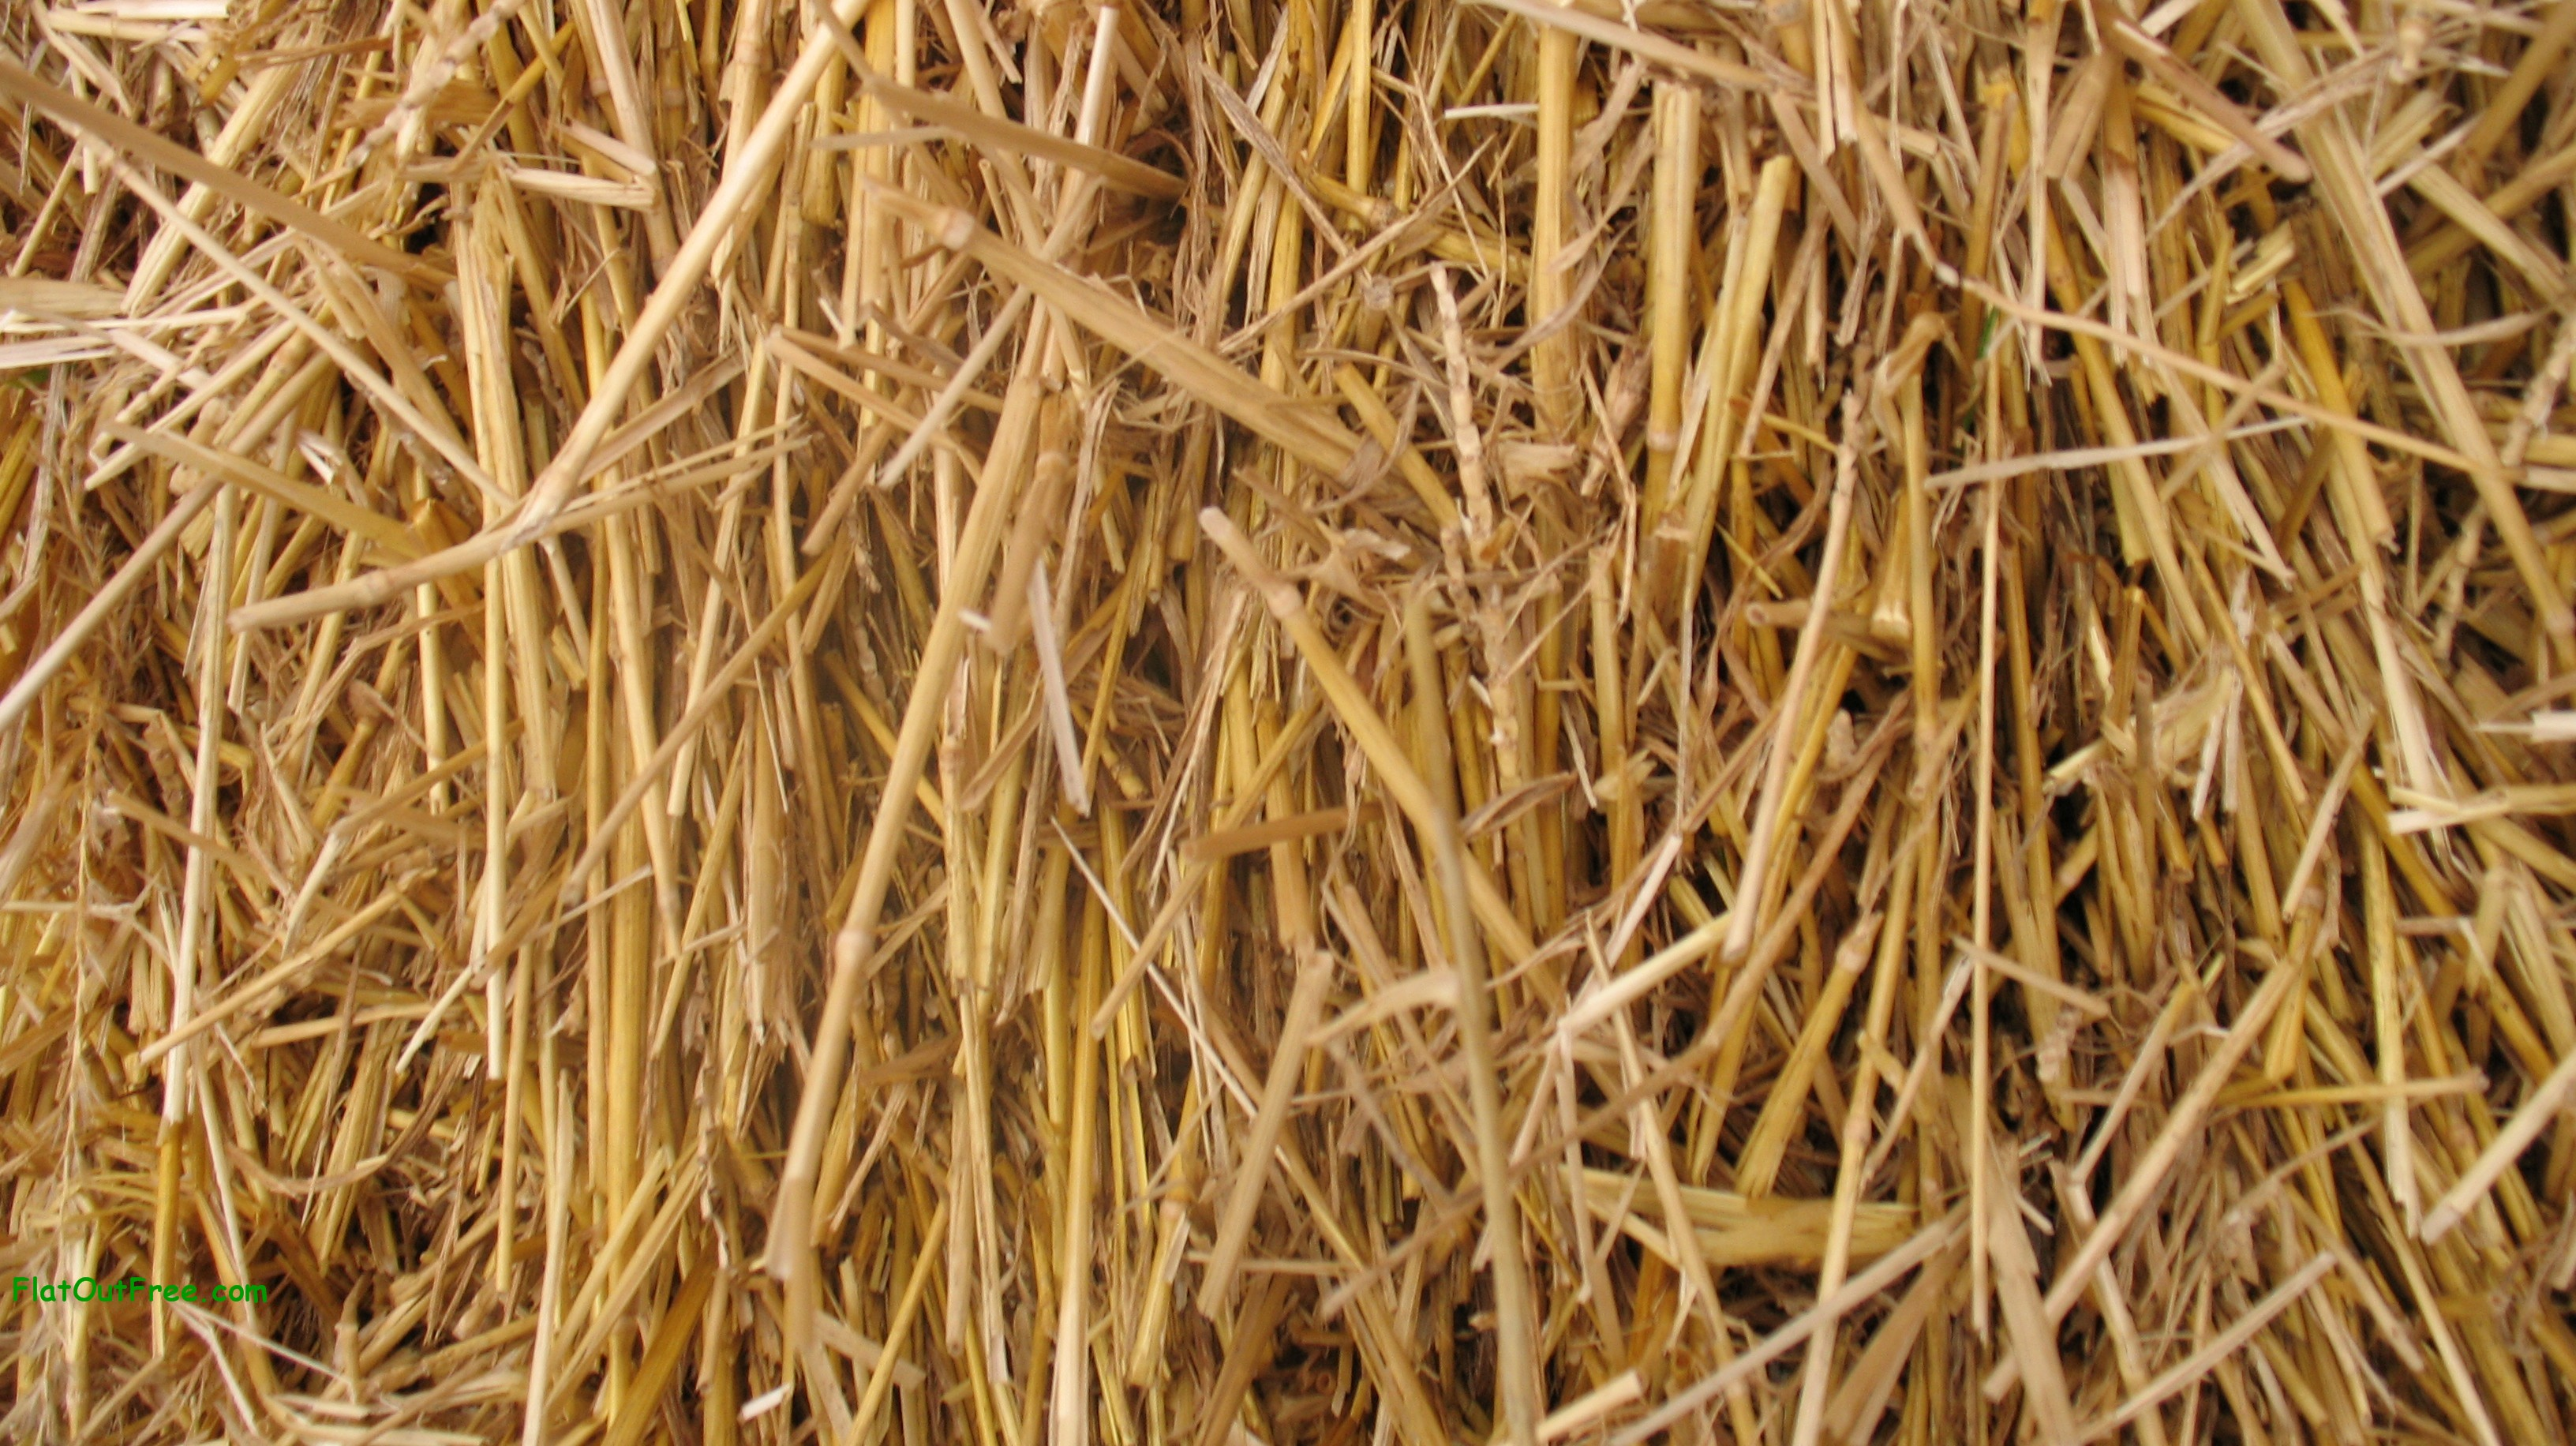 texture , download photo, background, straw texture background